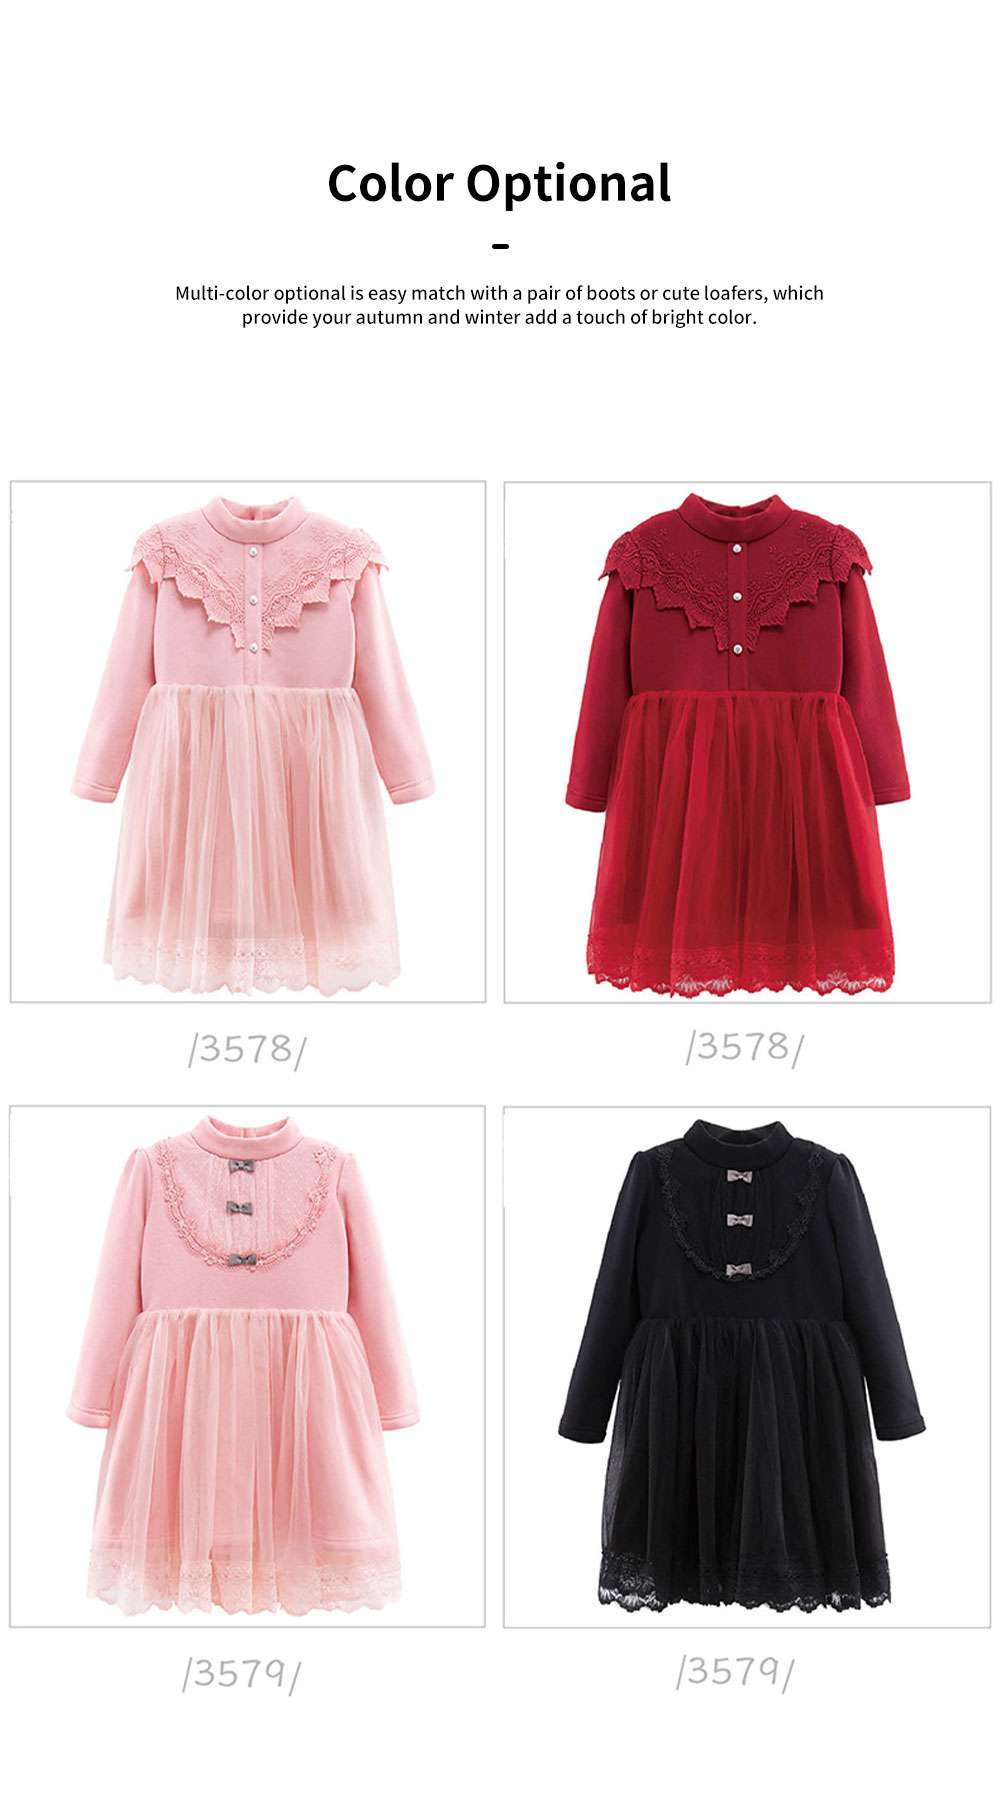 Warm Girl's One-piece Dress for Winter Autumn Fashion Grenadine Lace Princess Skirt with Buttons Pretty Long Sleeve Girls Dress 1